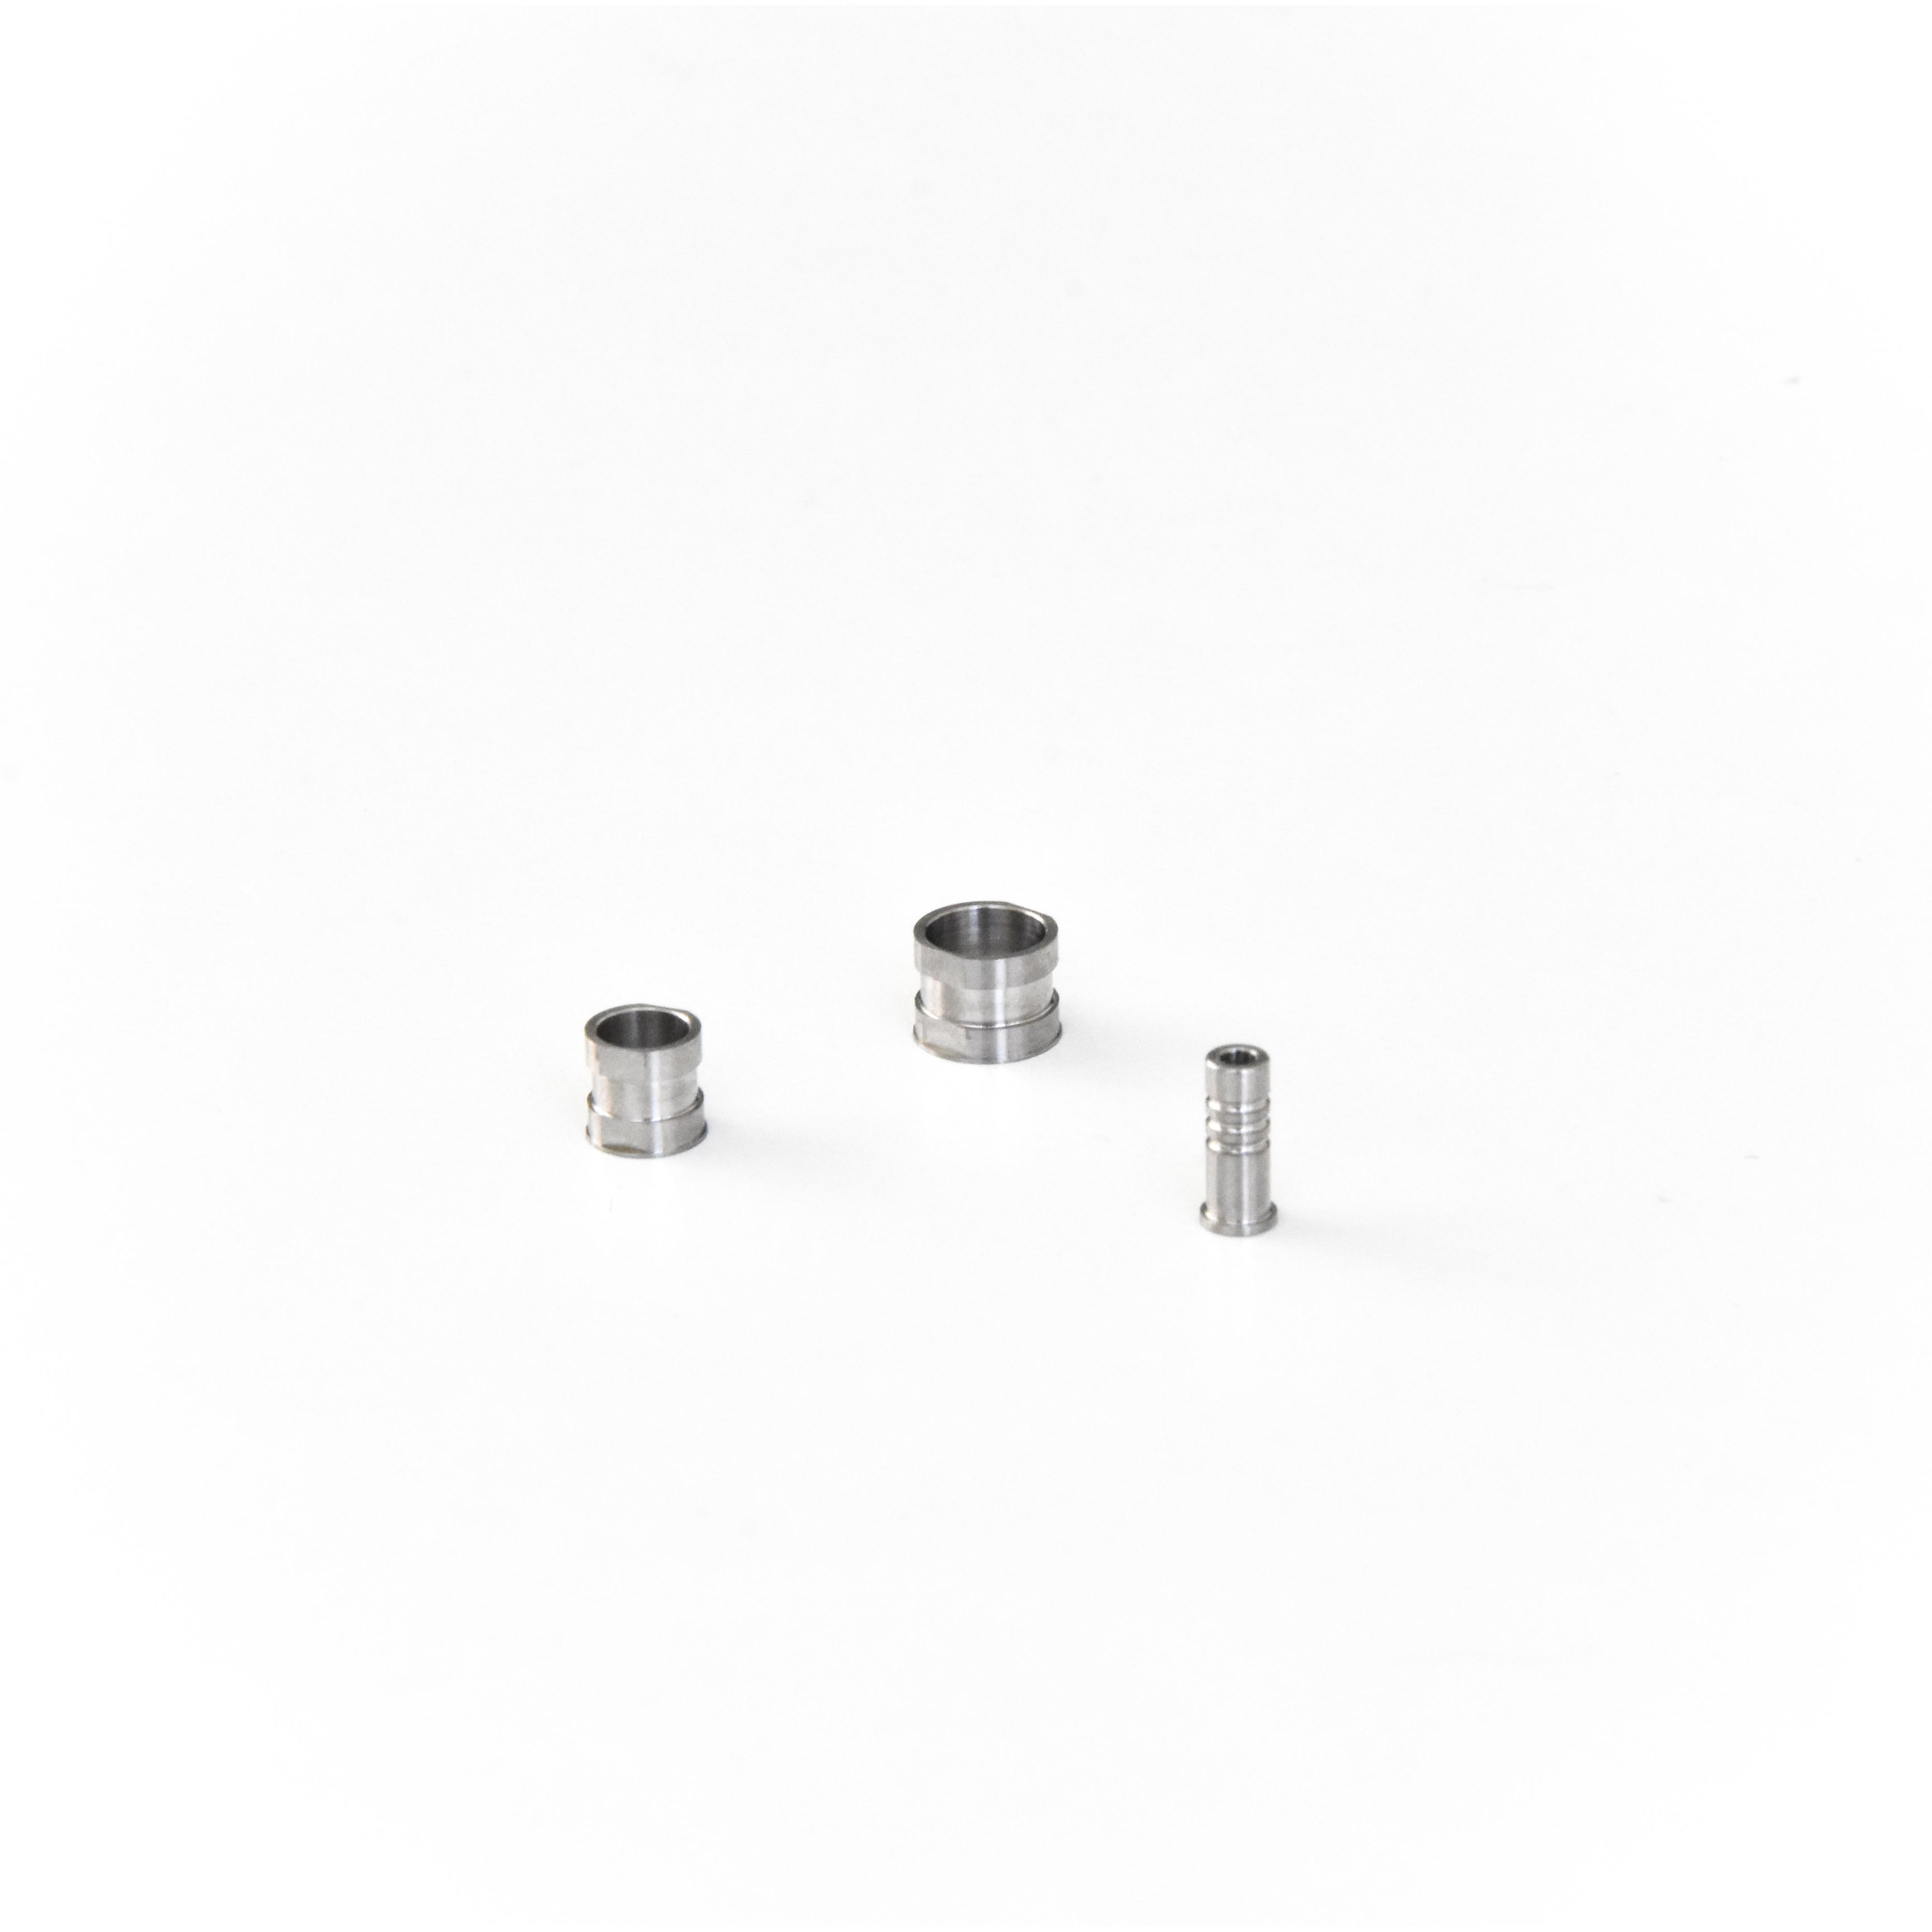 Bushings and components for guided surgery